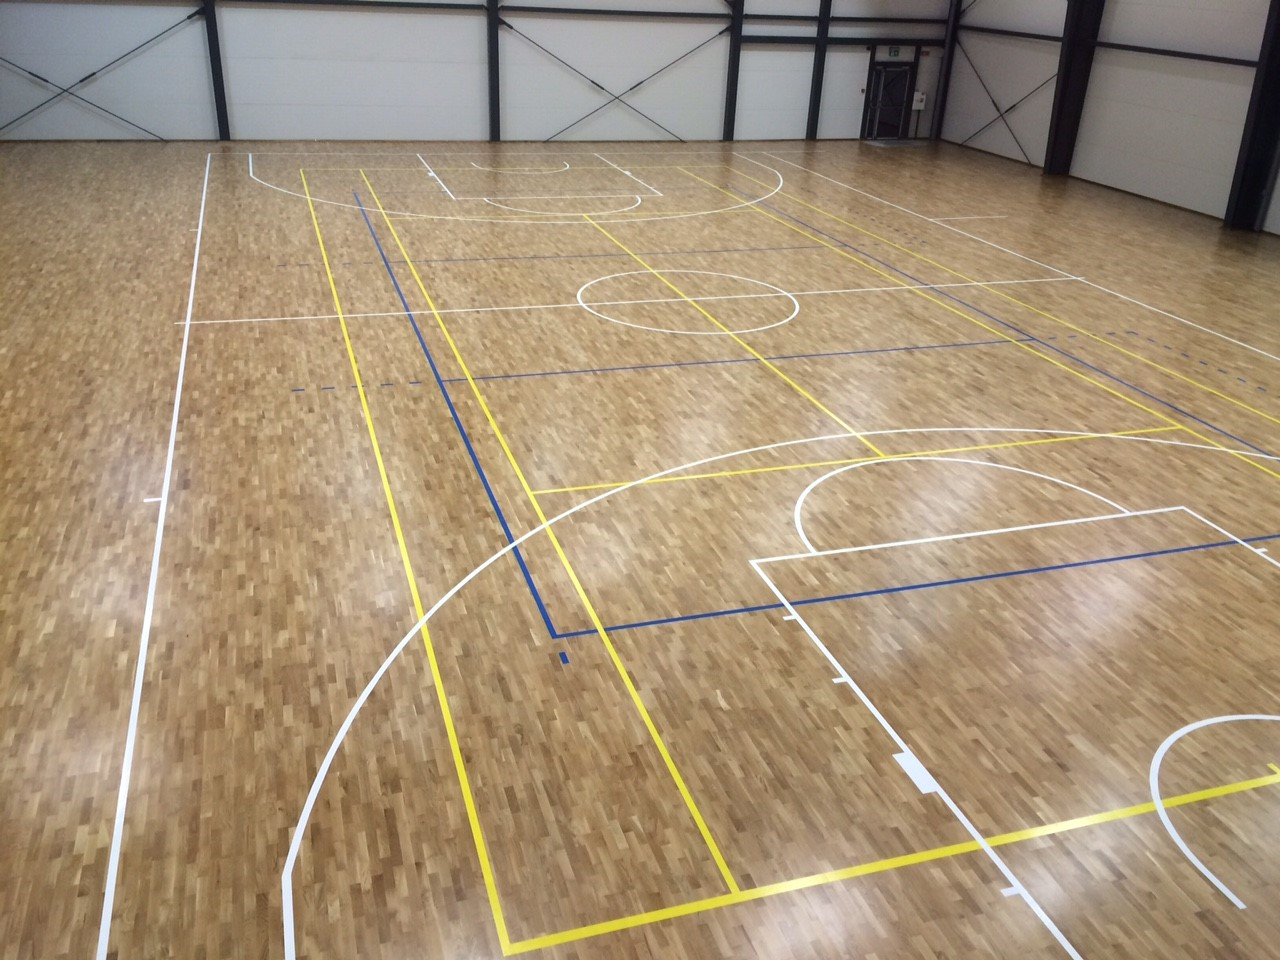 The oak sports parquet for the gym in Klaipeda, Lithuania